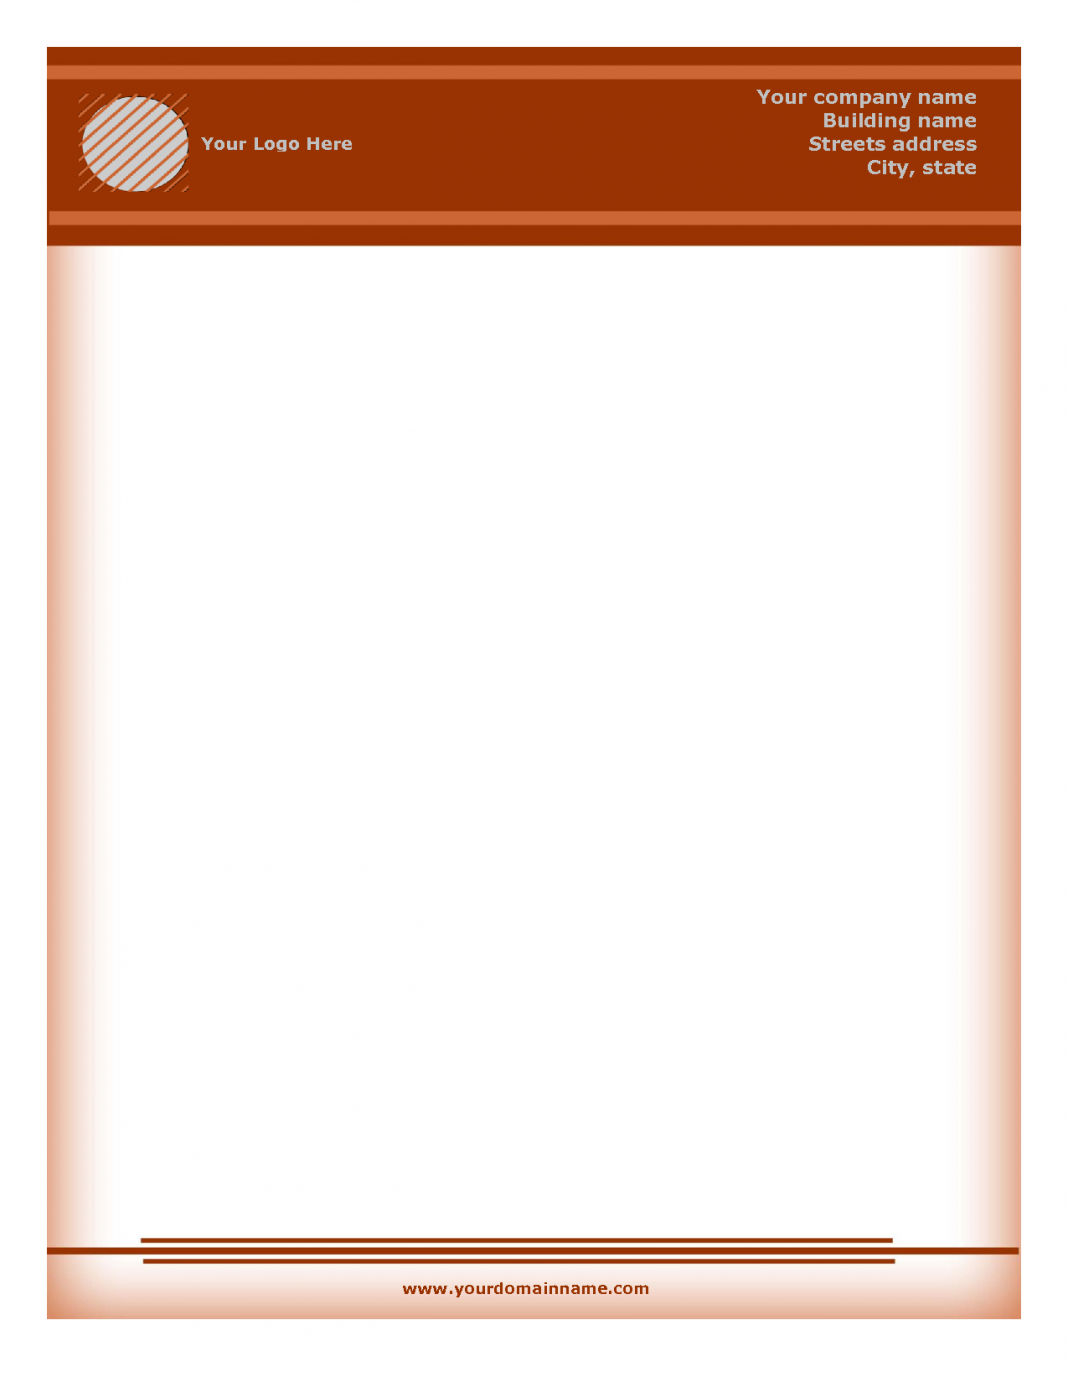 Fresh Letterhead Sample Free Download For You LetterBuis